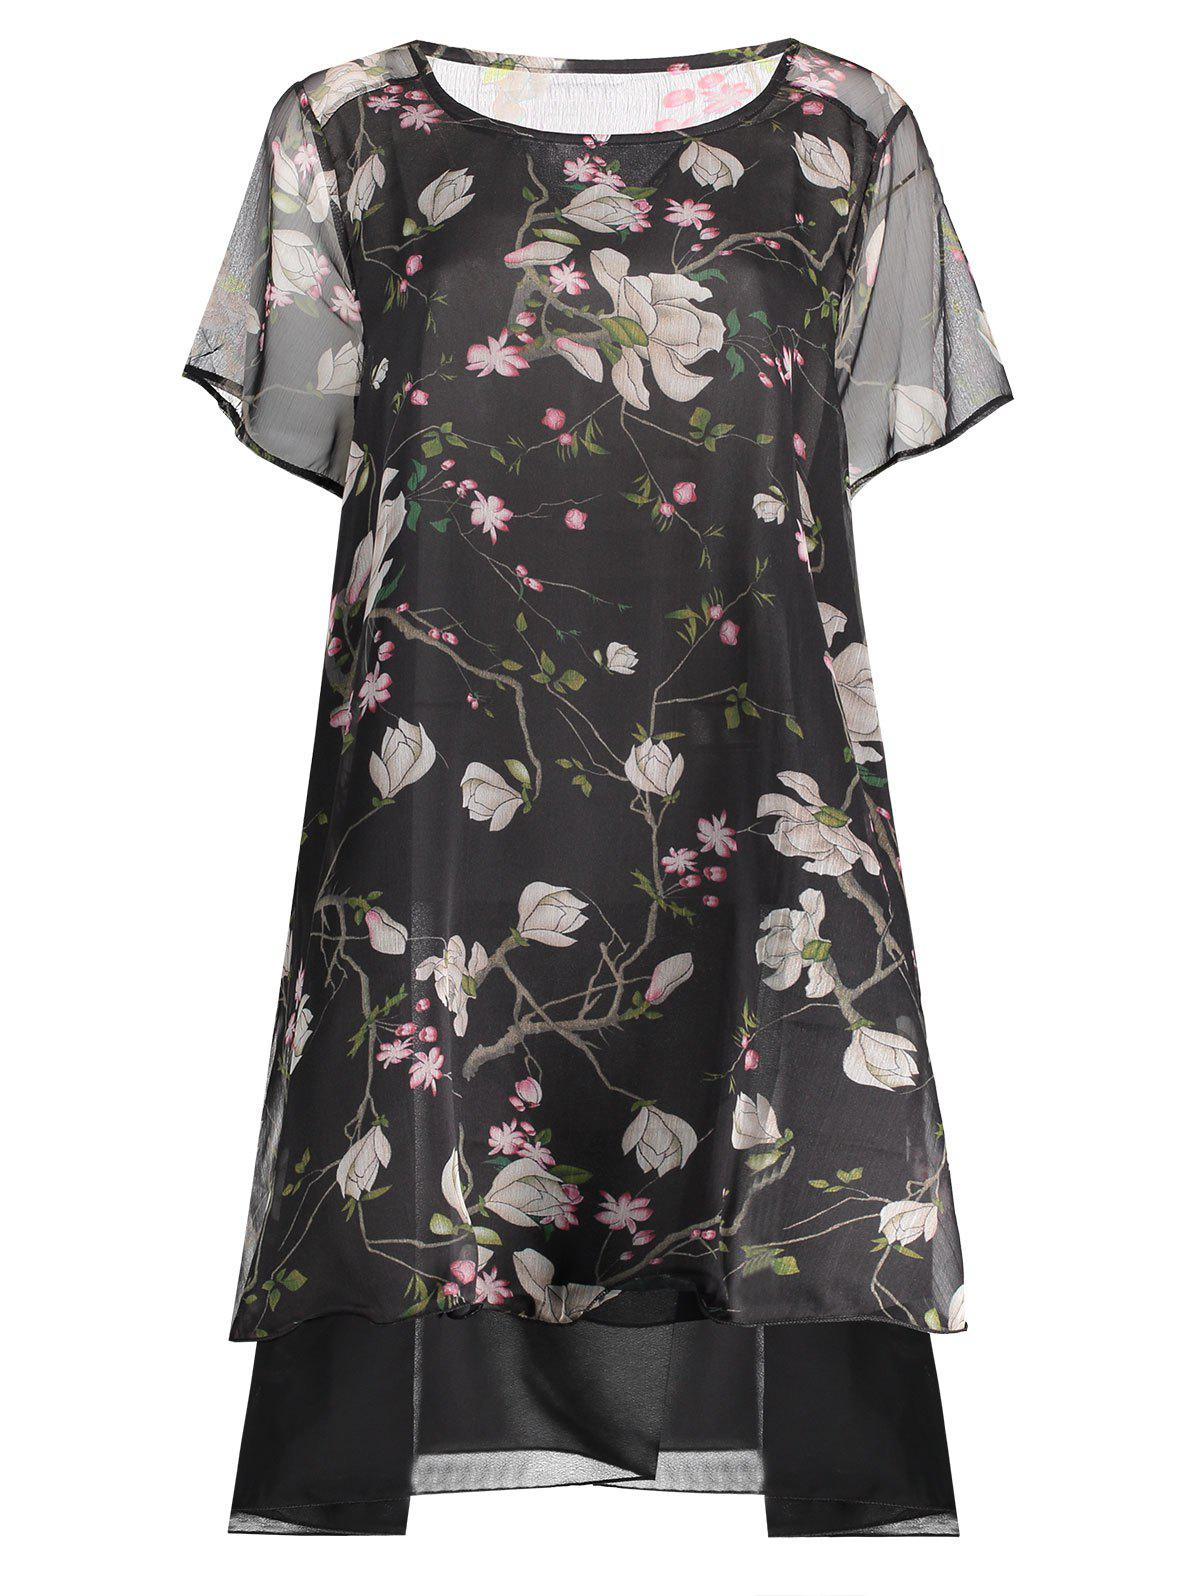 Chiffon Peacock Print Plus Size Layered Dress - BLACK 2XL